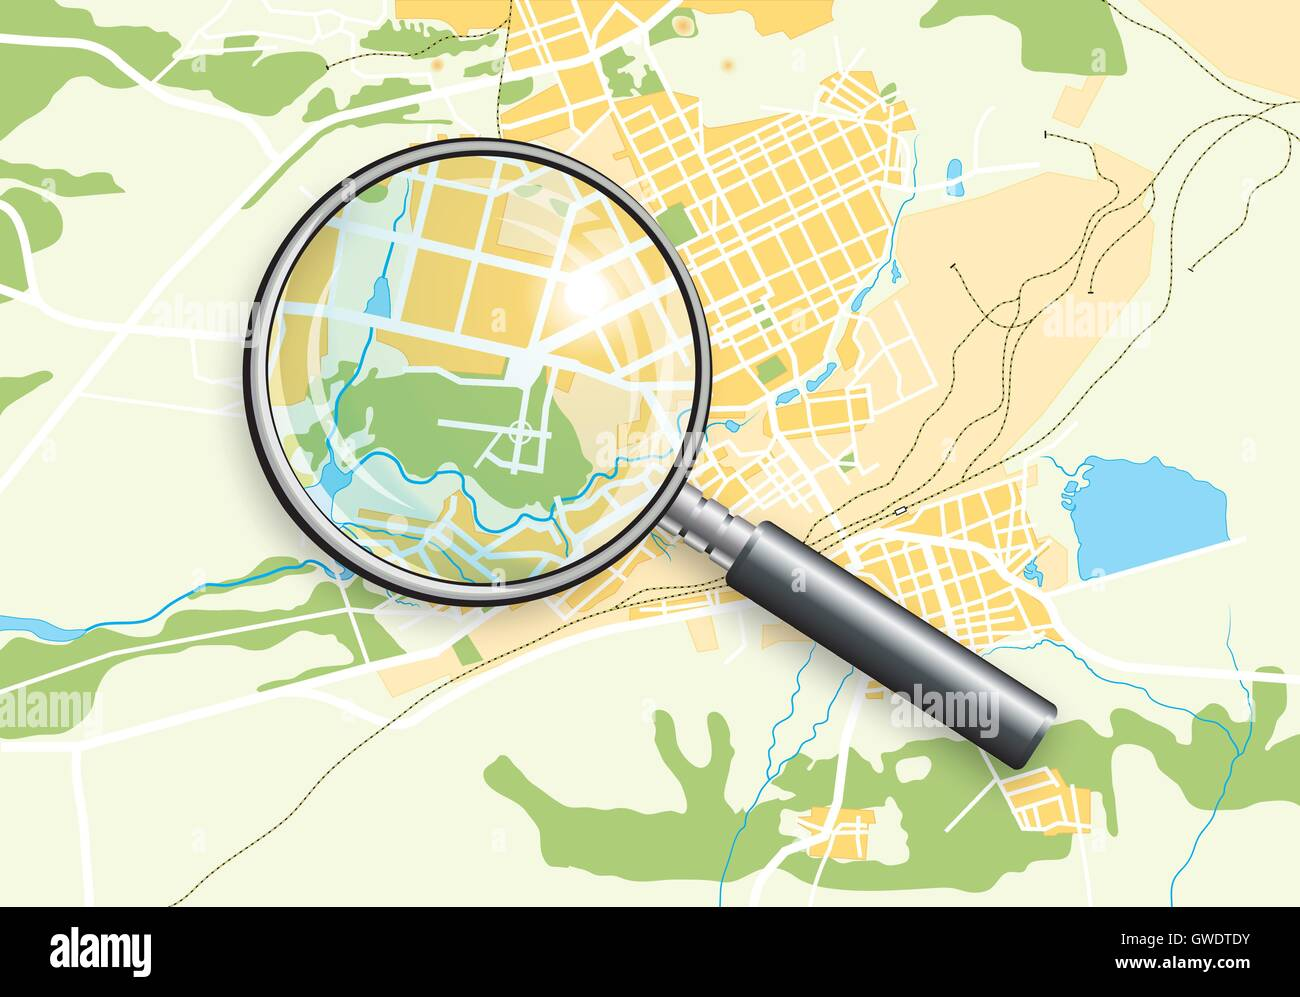 City Geo Map and Magnifying Glass Lens II - Stock Vector